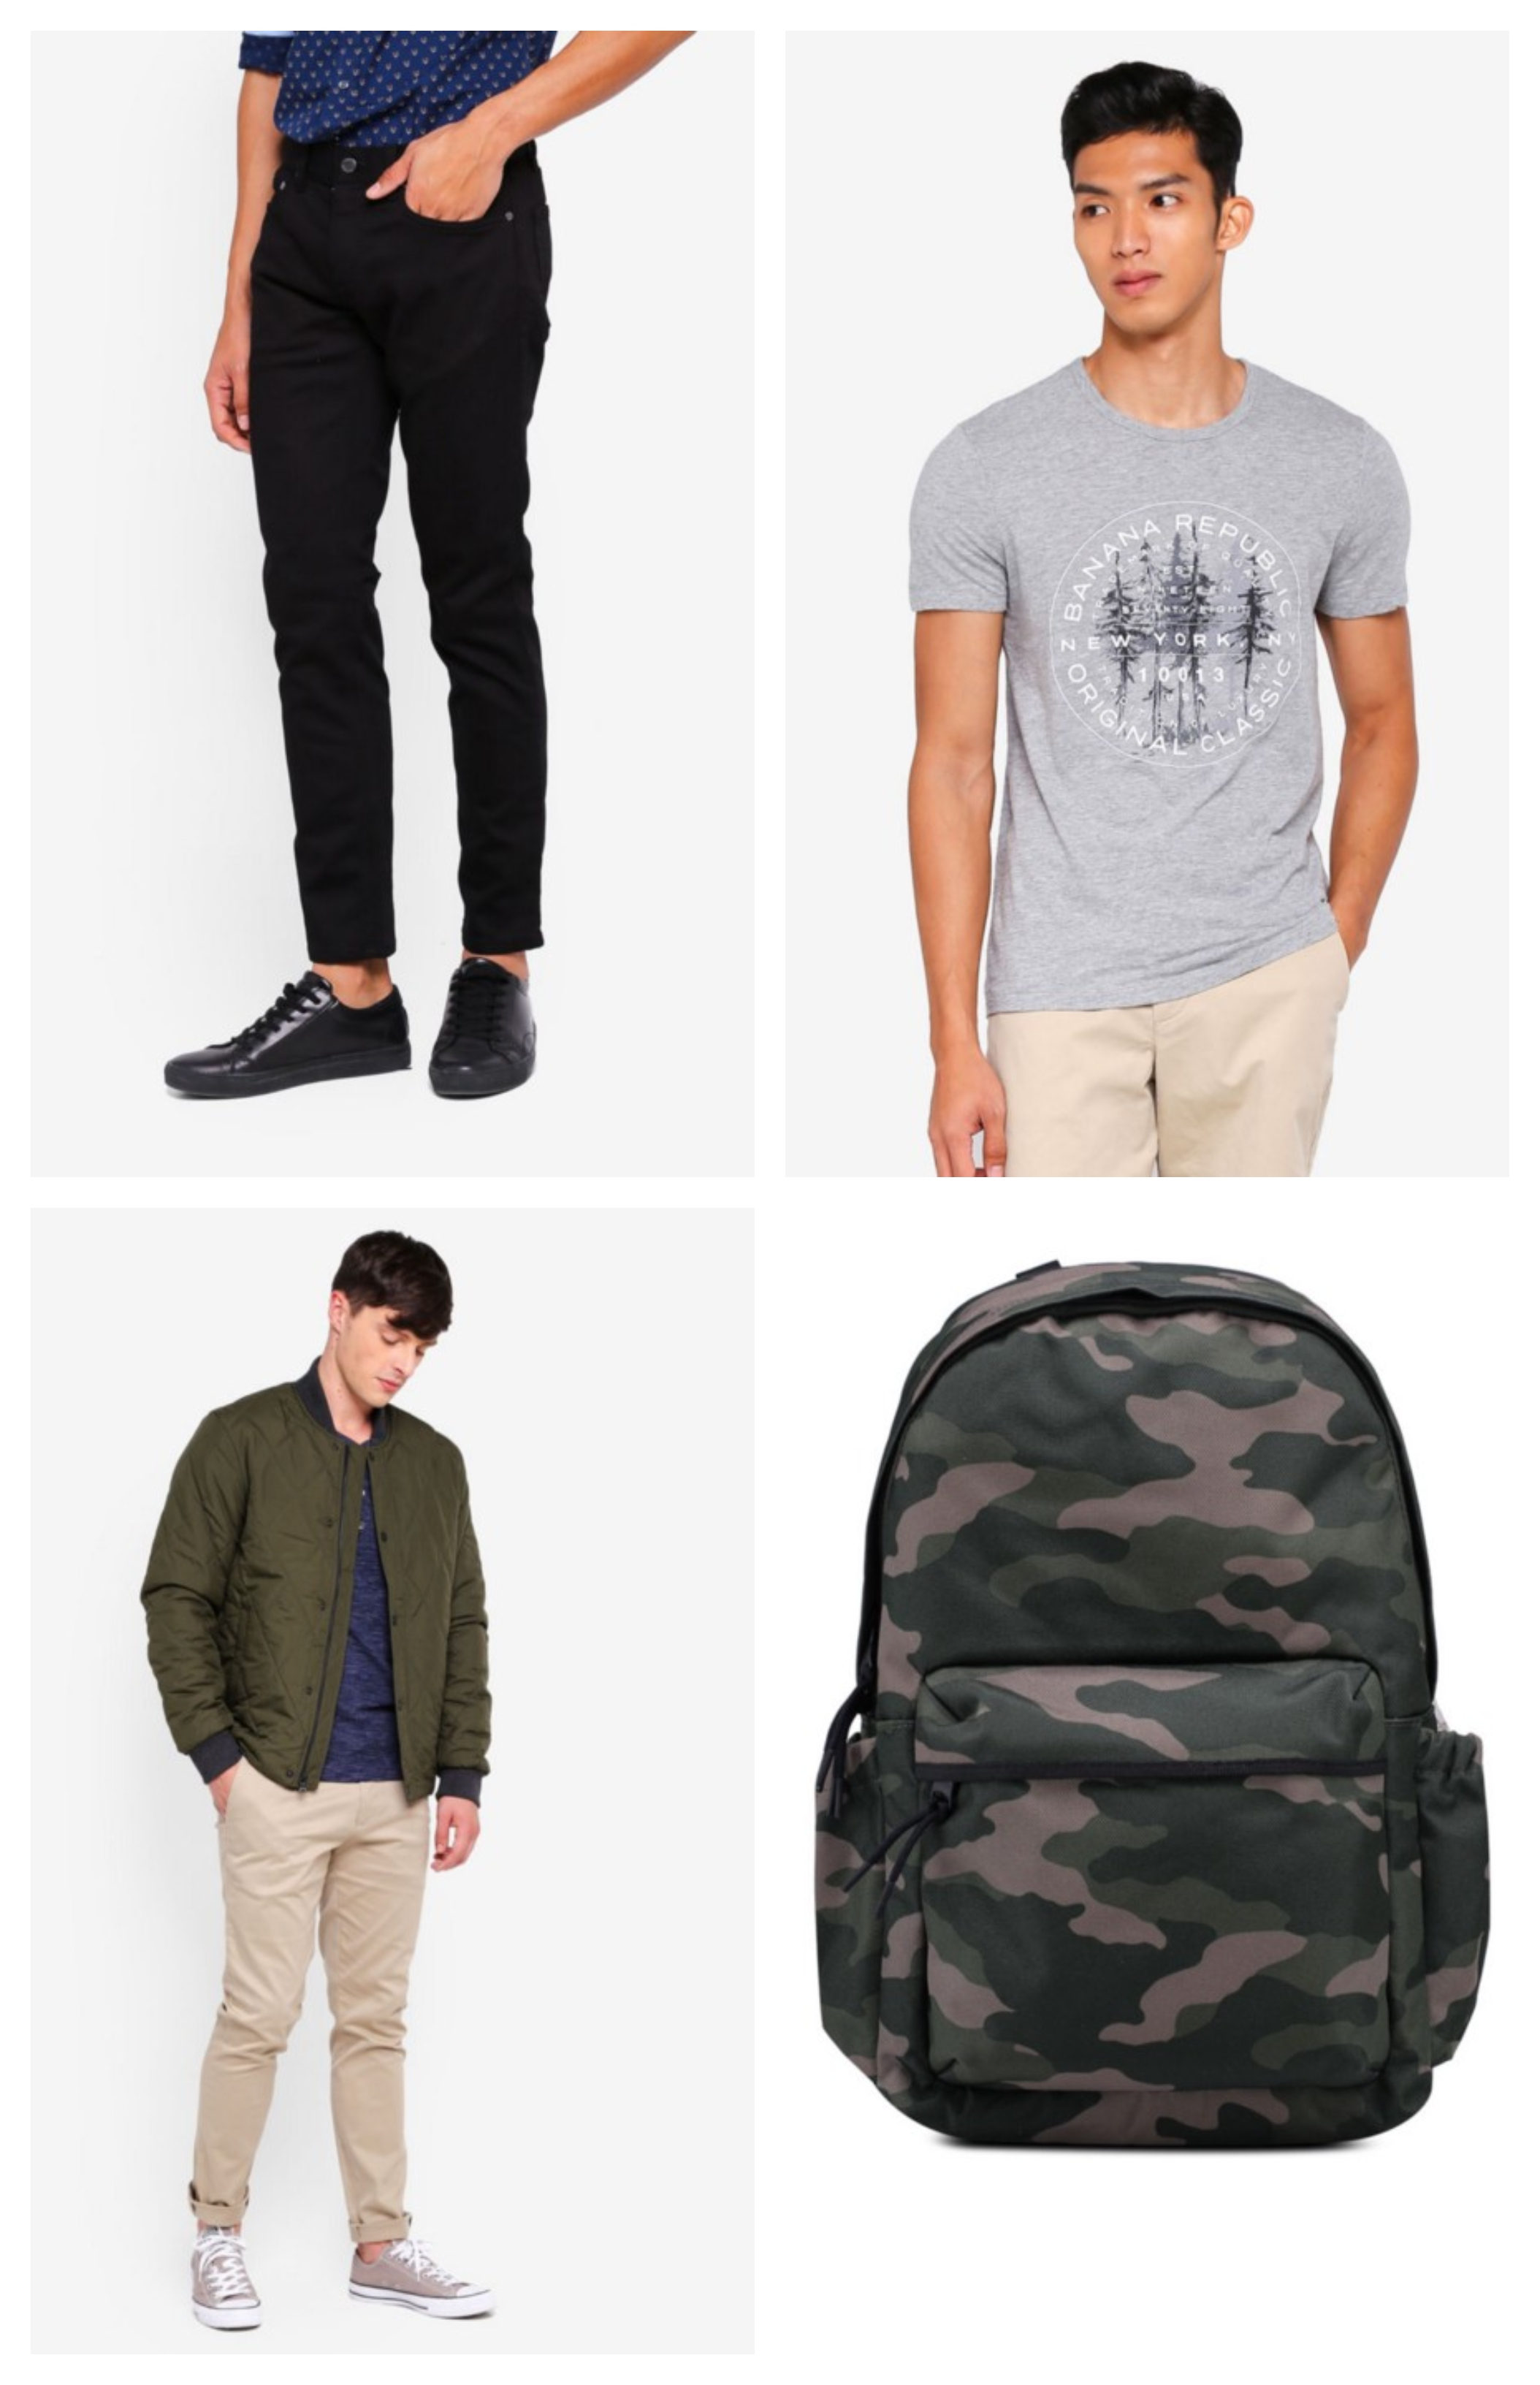 Clockwise from top left:  Skinny Traveler Pants  |  Vintage SlubTree Logo Tee  |  Camo Nylon Backpack  |  Quilted Bomber Jacket